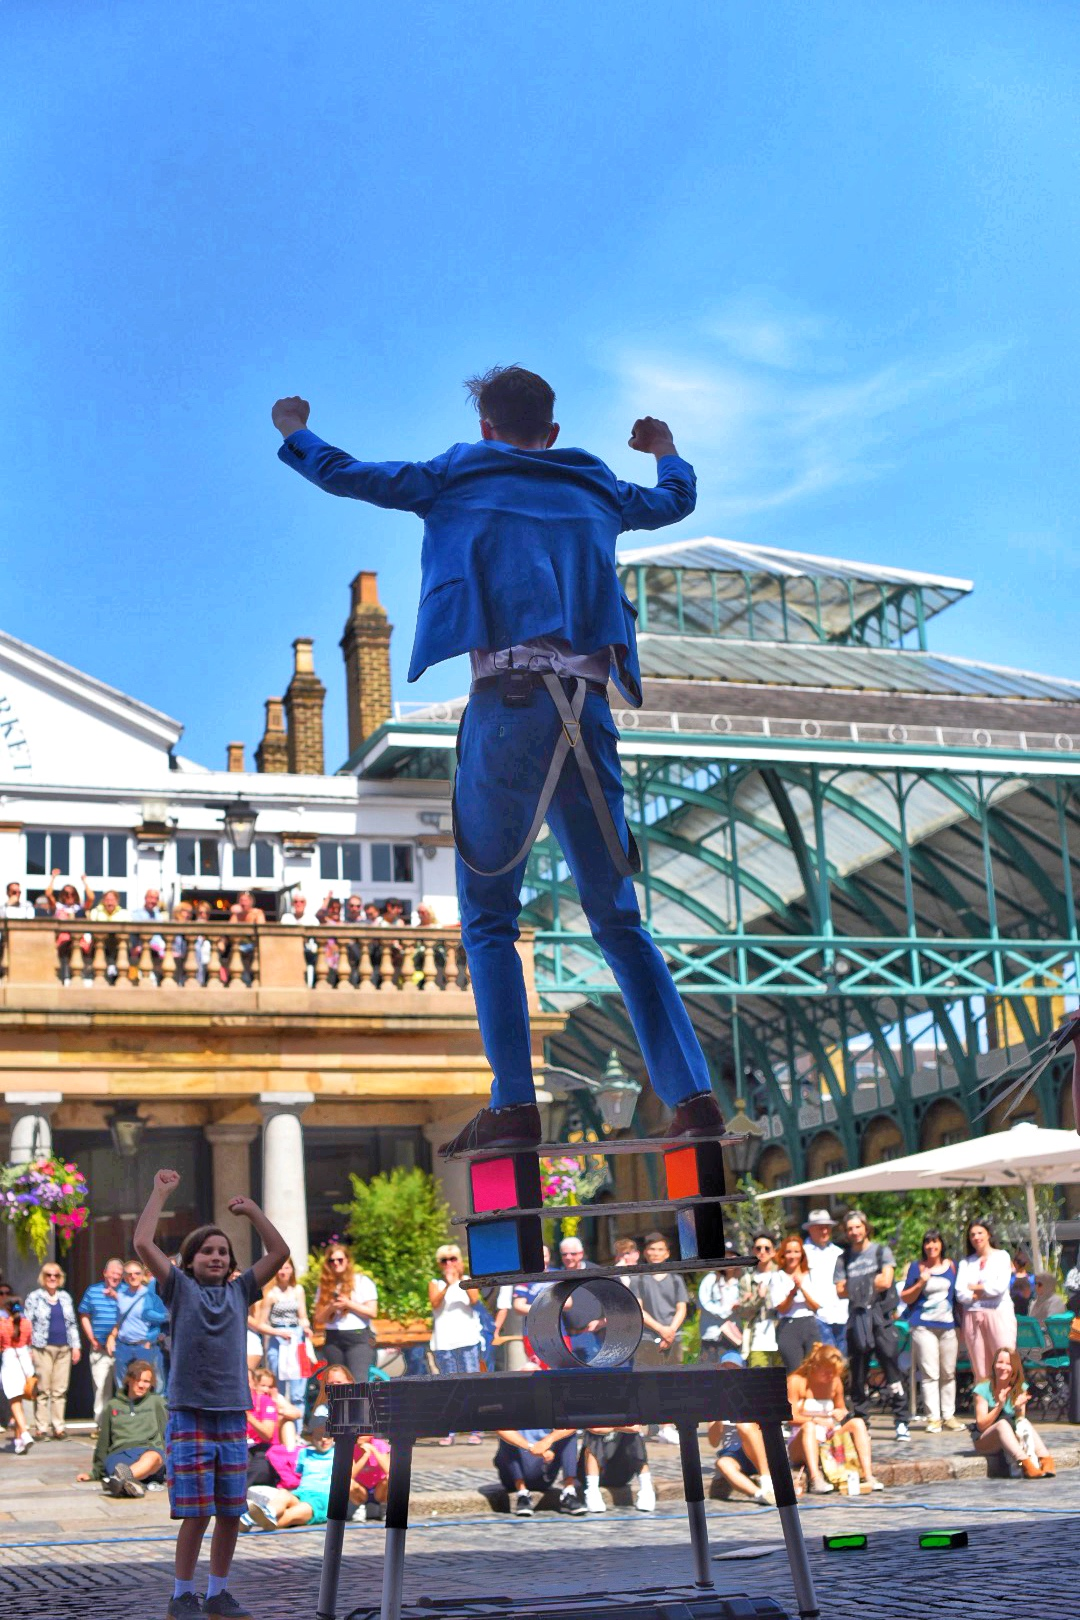 Audience participation is a big part of the street performers in Covent Garden.